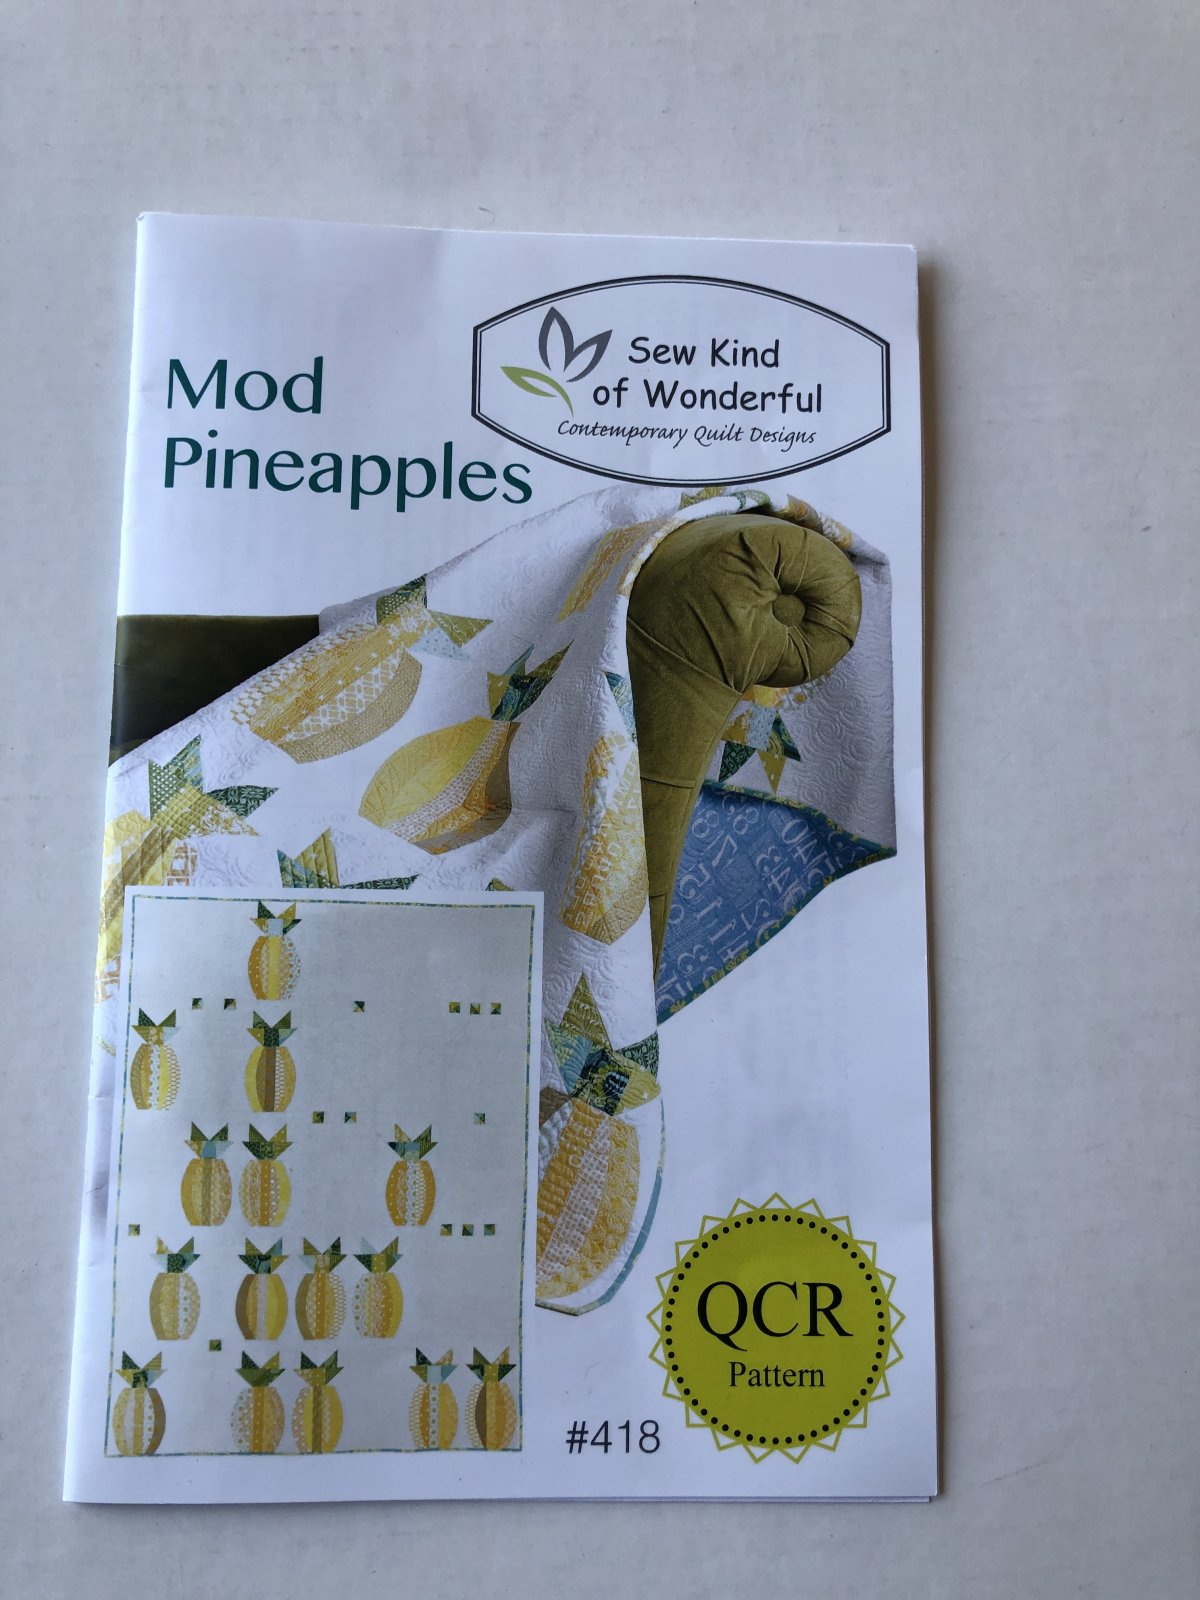 Sew Kind of Wonderful Mod Pineapples Quilt pattern